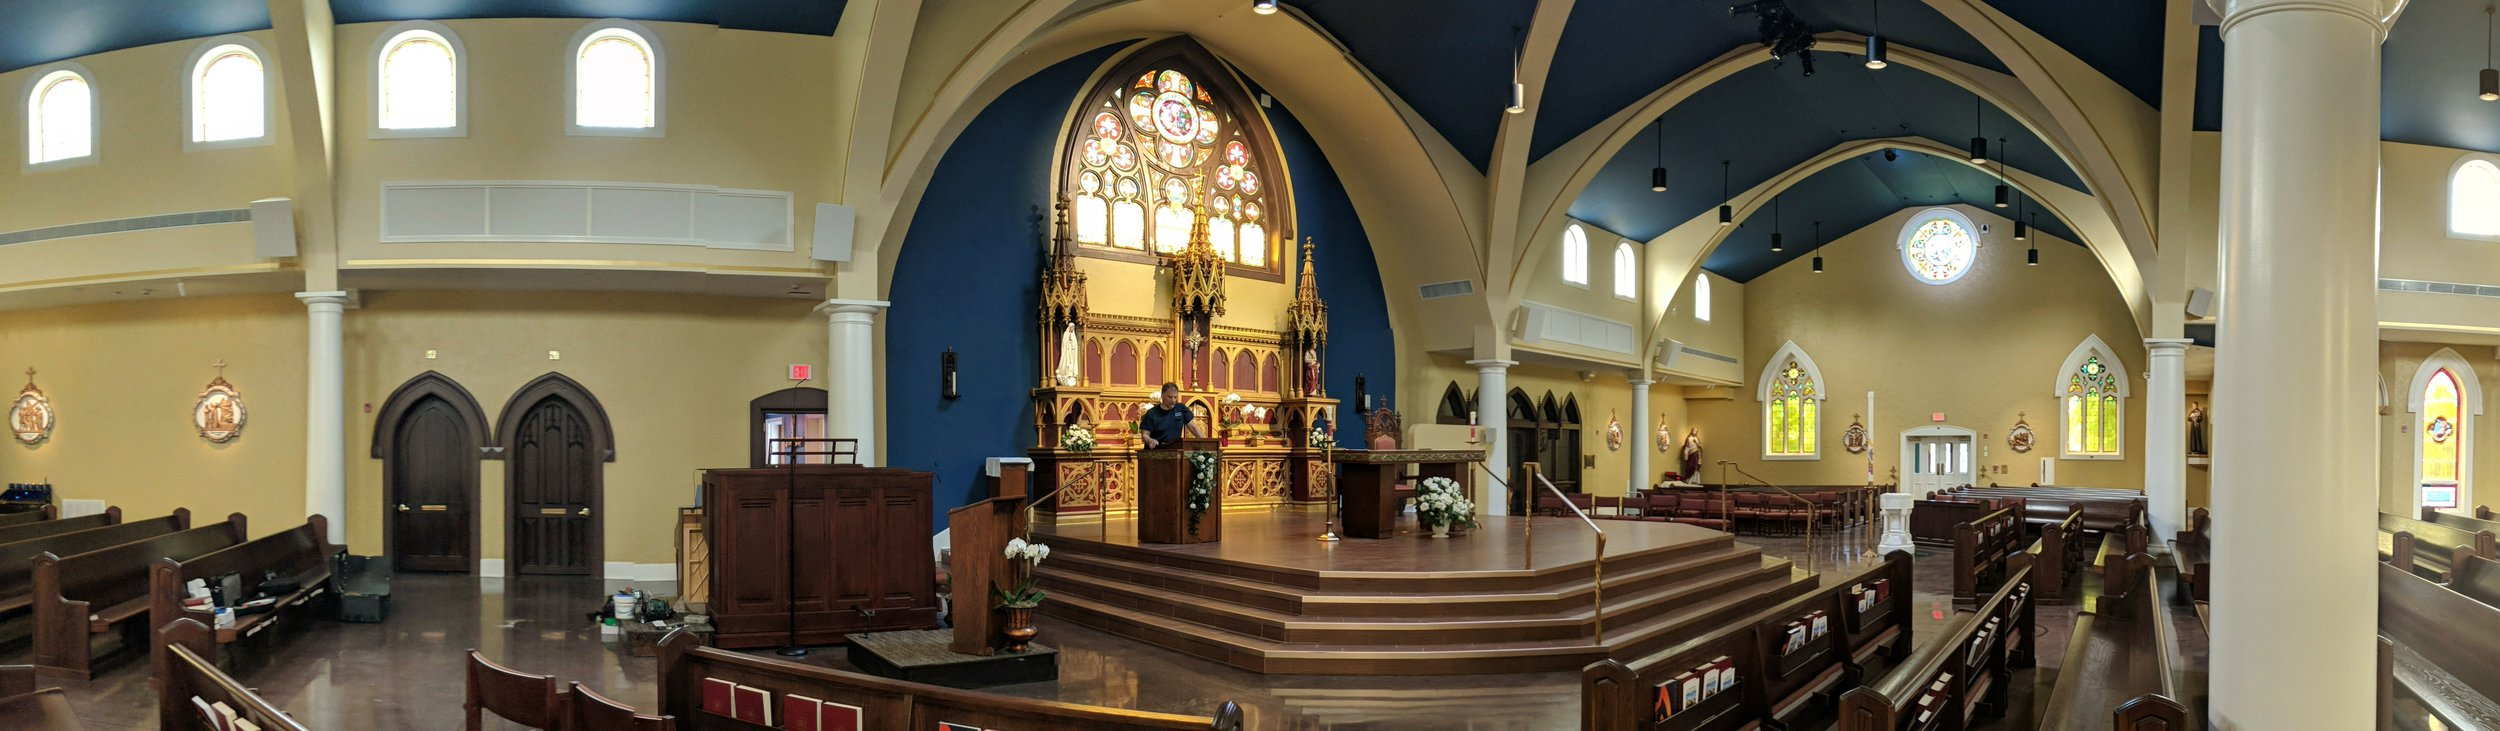 Four DT-800 speakers across the front of the church provide audio coverage in the front pews and low frequency reinforcement.